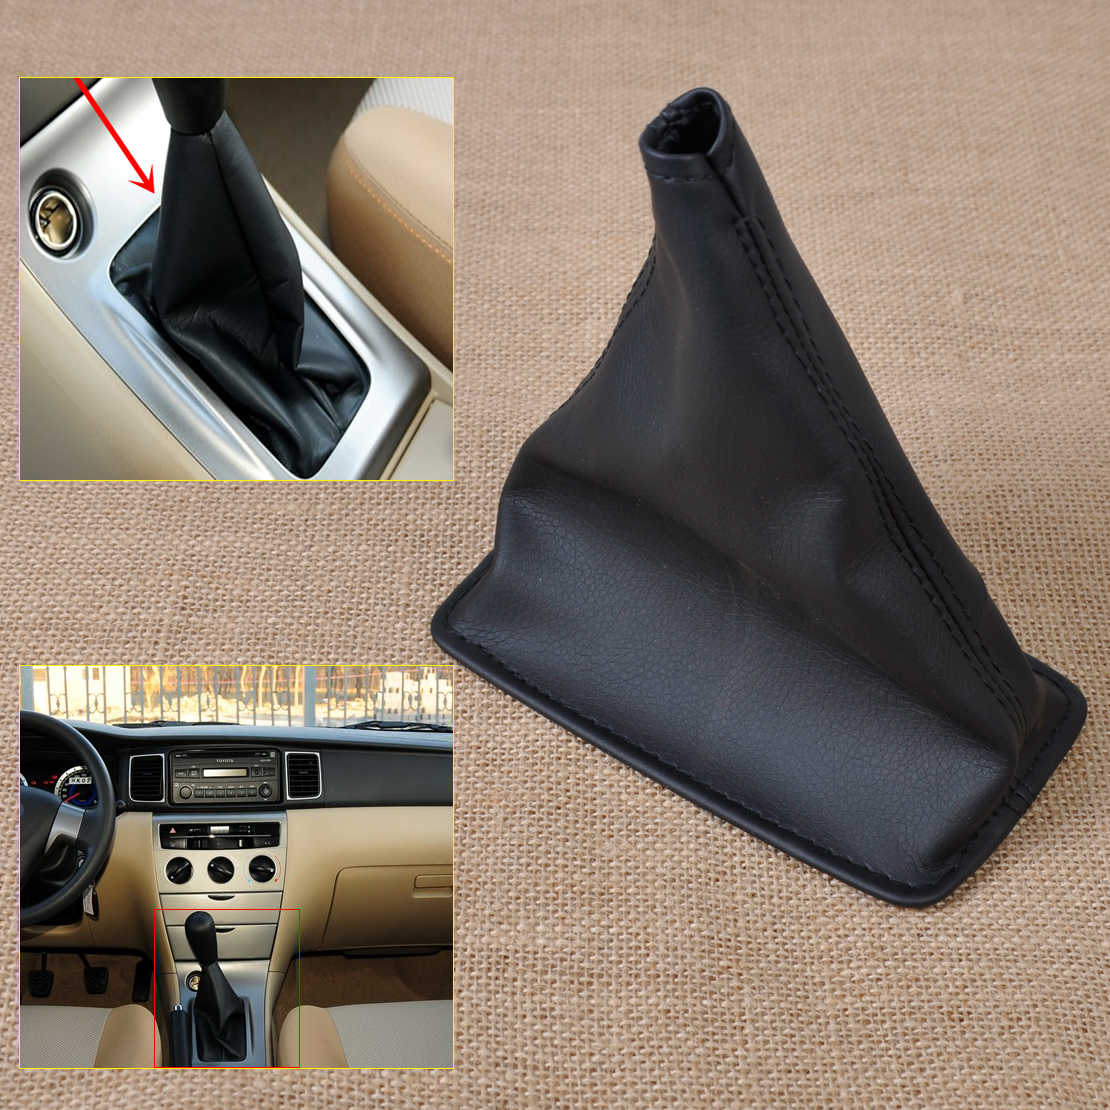 beler New Gear Stick Shift PU Leather Cover Boot Gaiter for Toyota Corolla 2001 2002 2003 2004 2005 2006 2007 2008 2009-2013